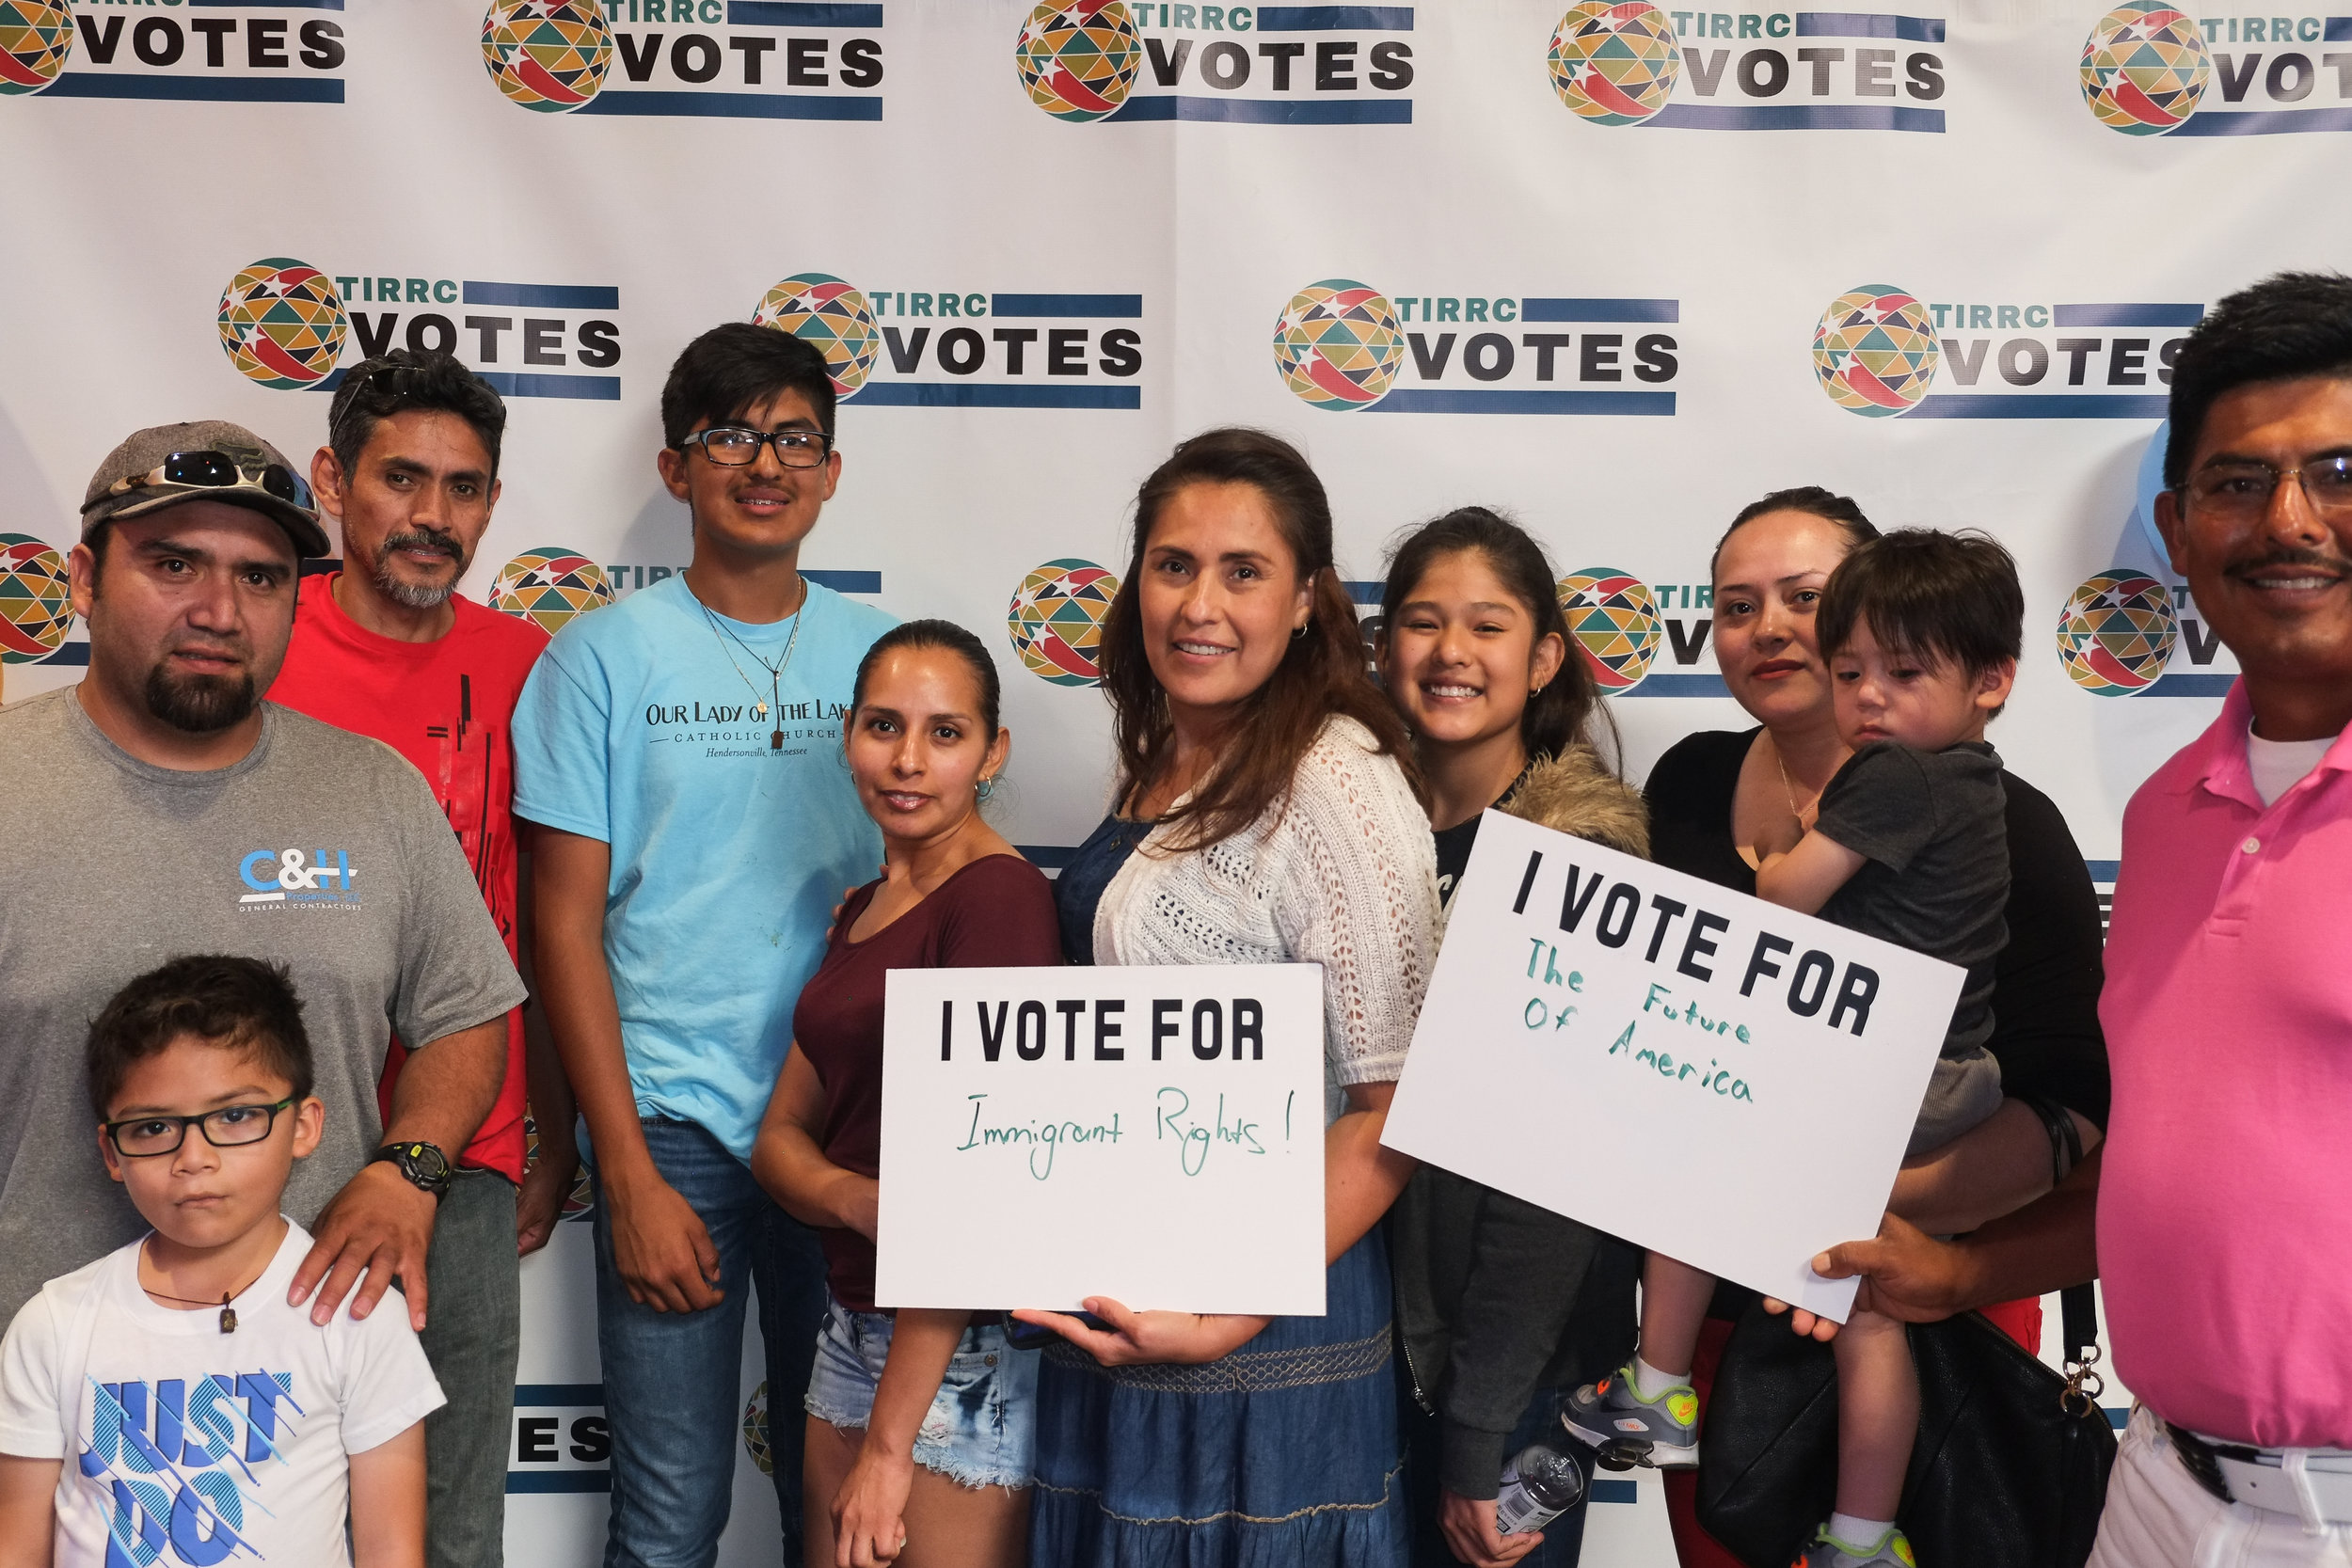 TIRRCVotes-PhotoBooth-14.jpg